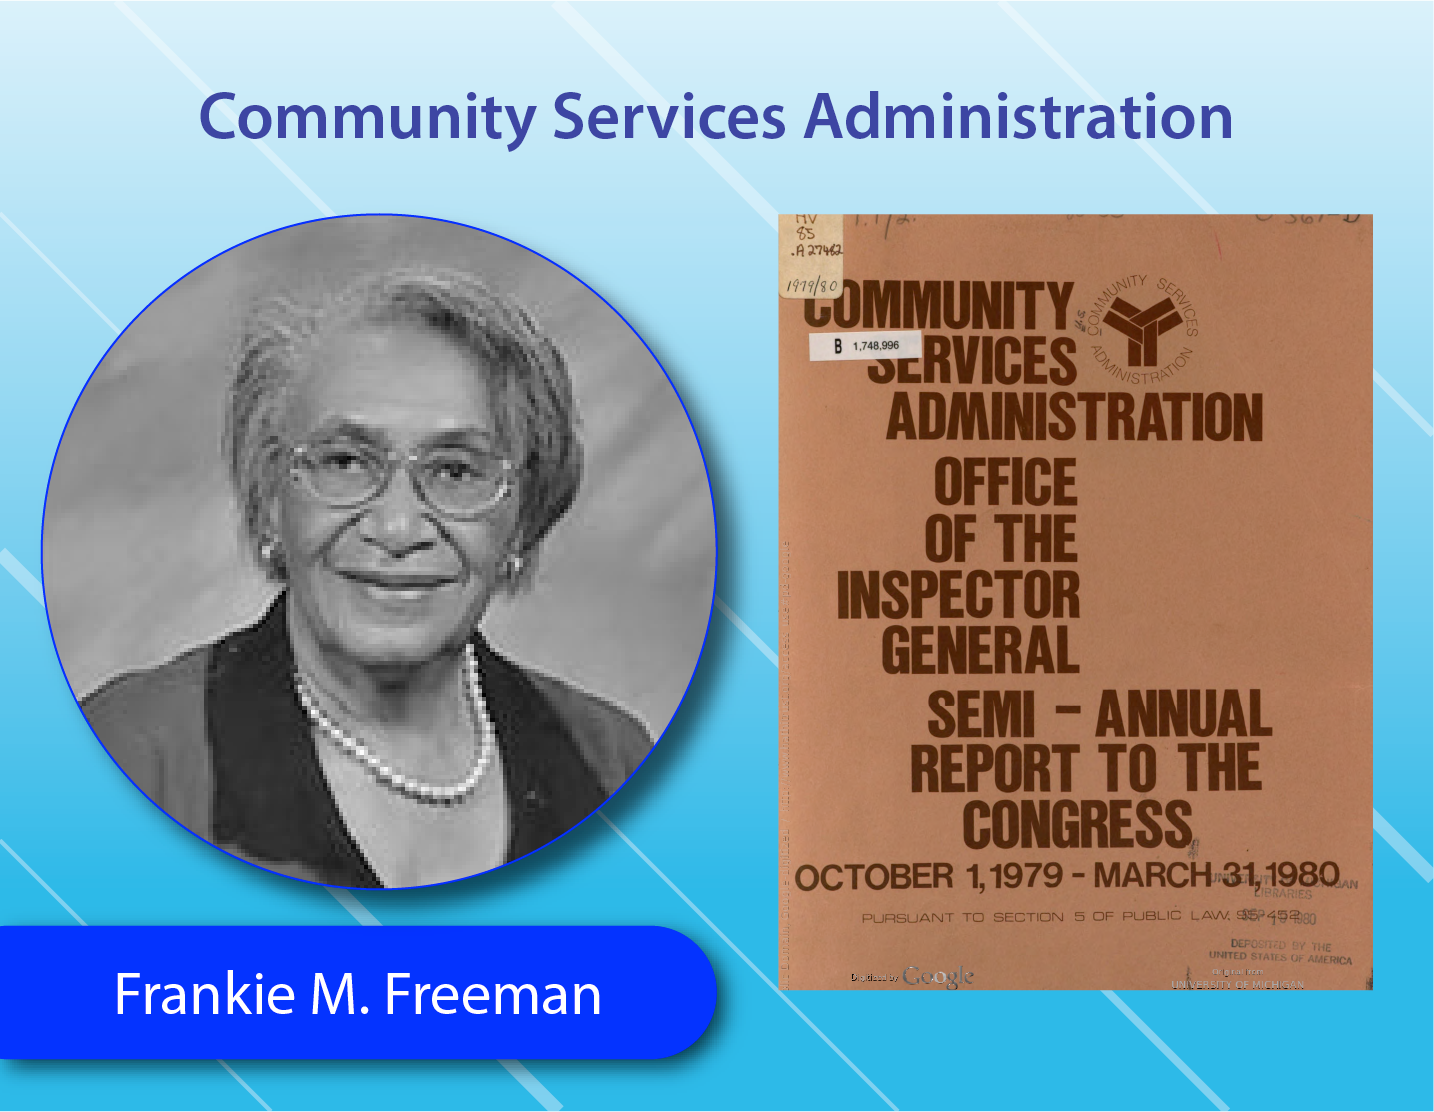 Community Services Administration - Frankie M. Freeman